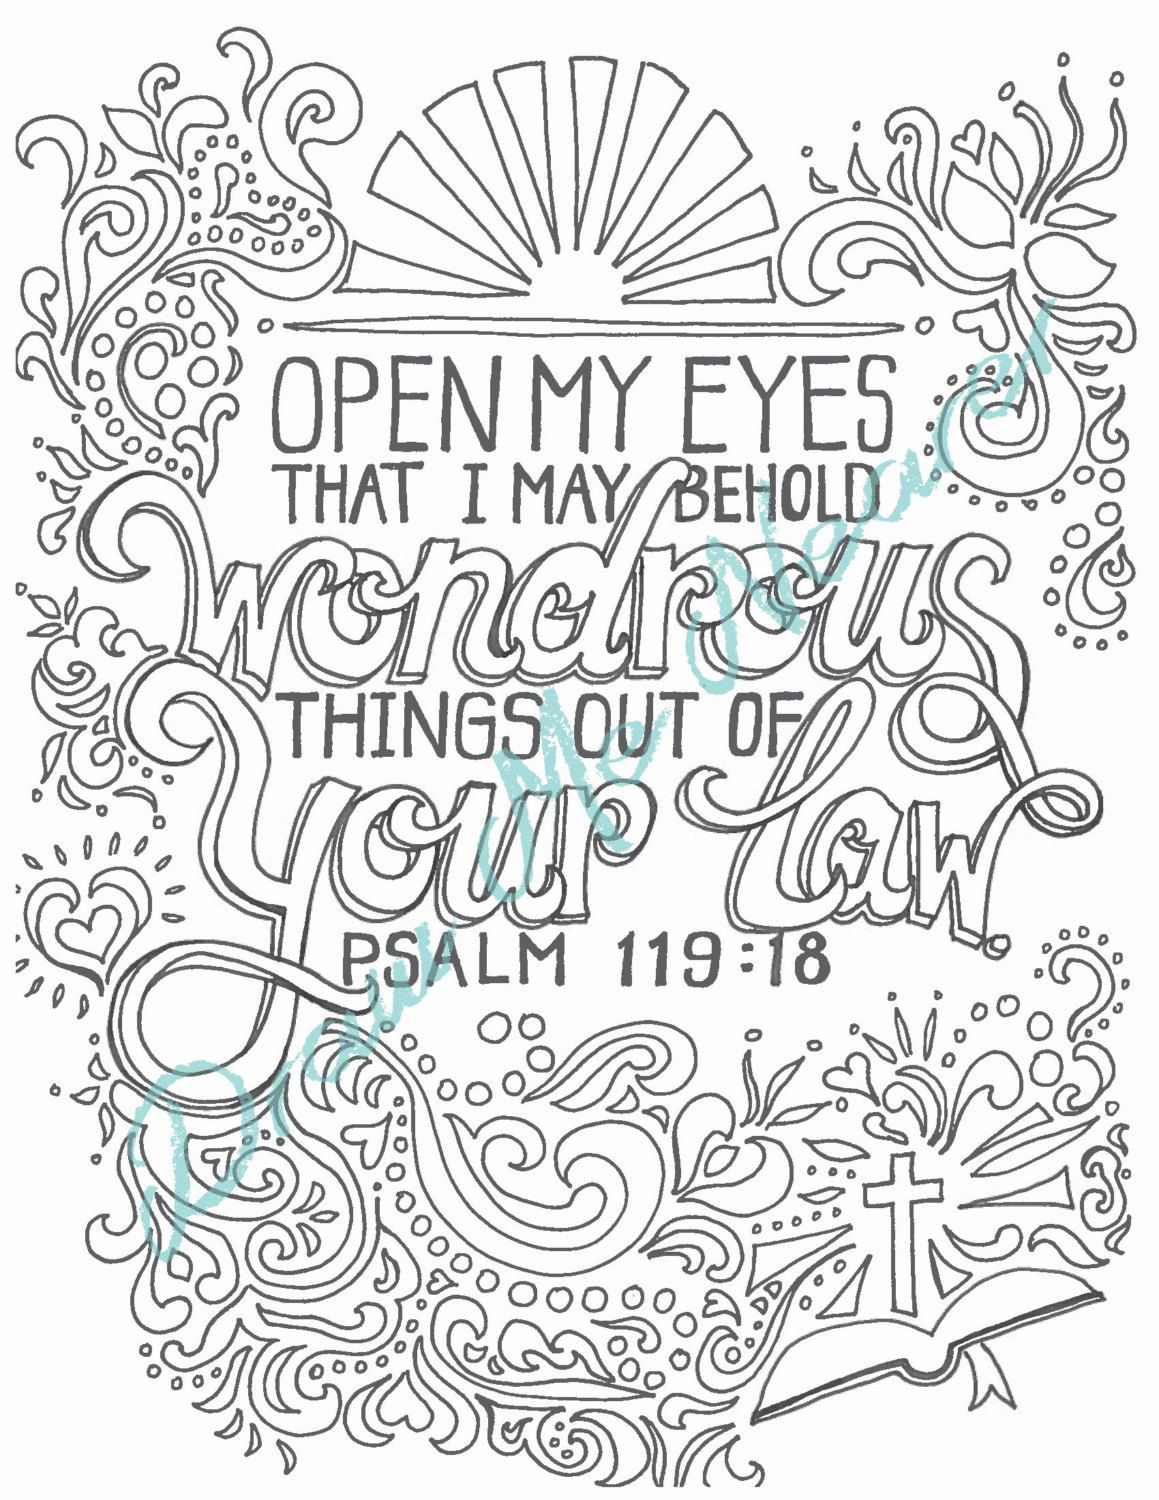 Printable Christian Coloring Page Illustrated By DrawMeNearer